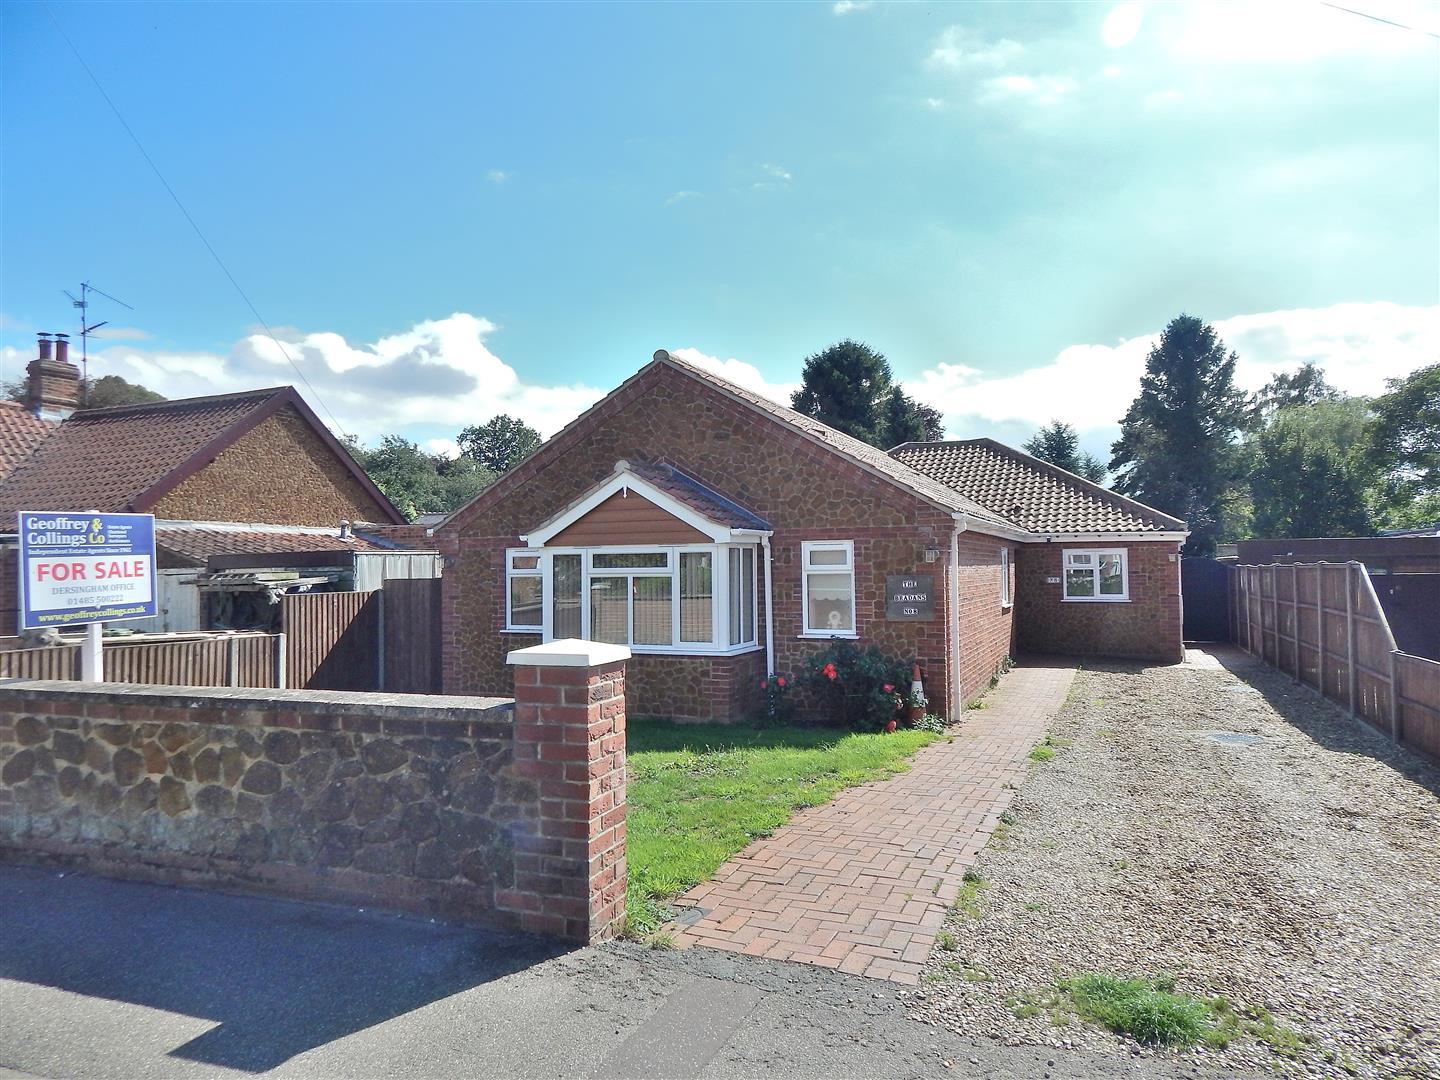 4 bed detached bungalow for sale in King's Lynn, PE31 7QL - Property Image 1